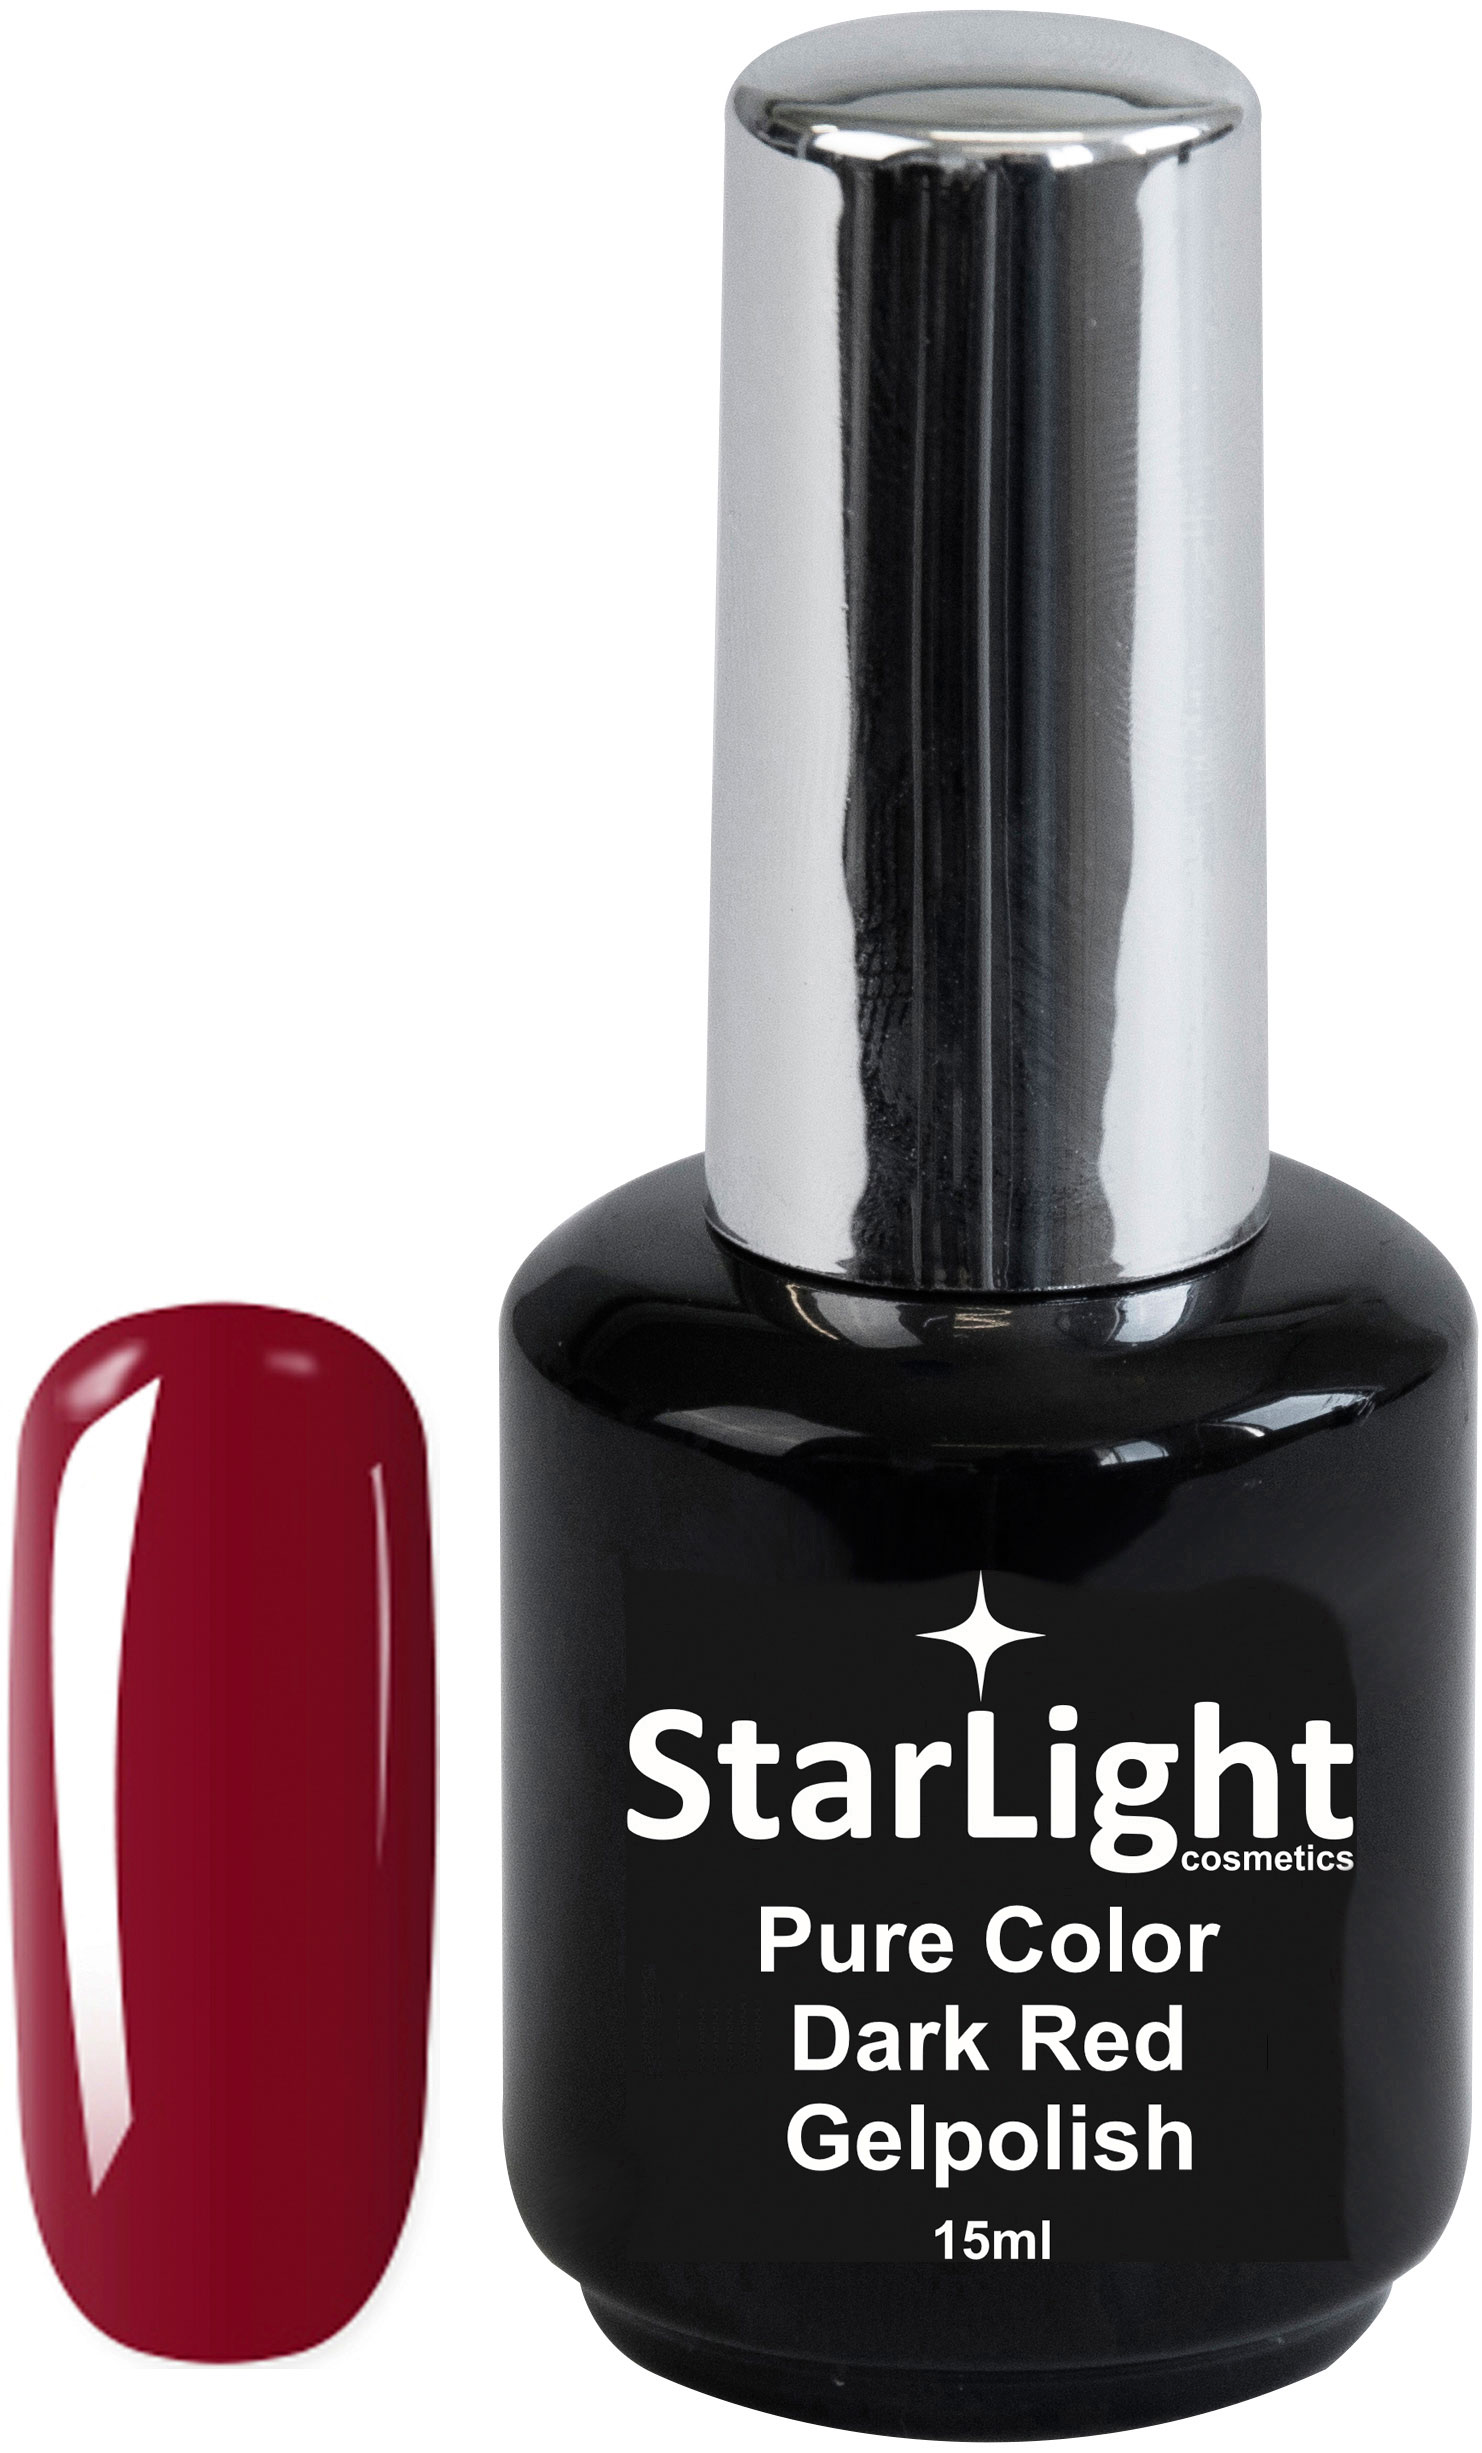 Naglar Gelpolish Pure Color Dark Red - 15 ml